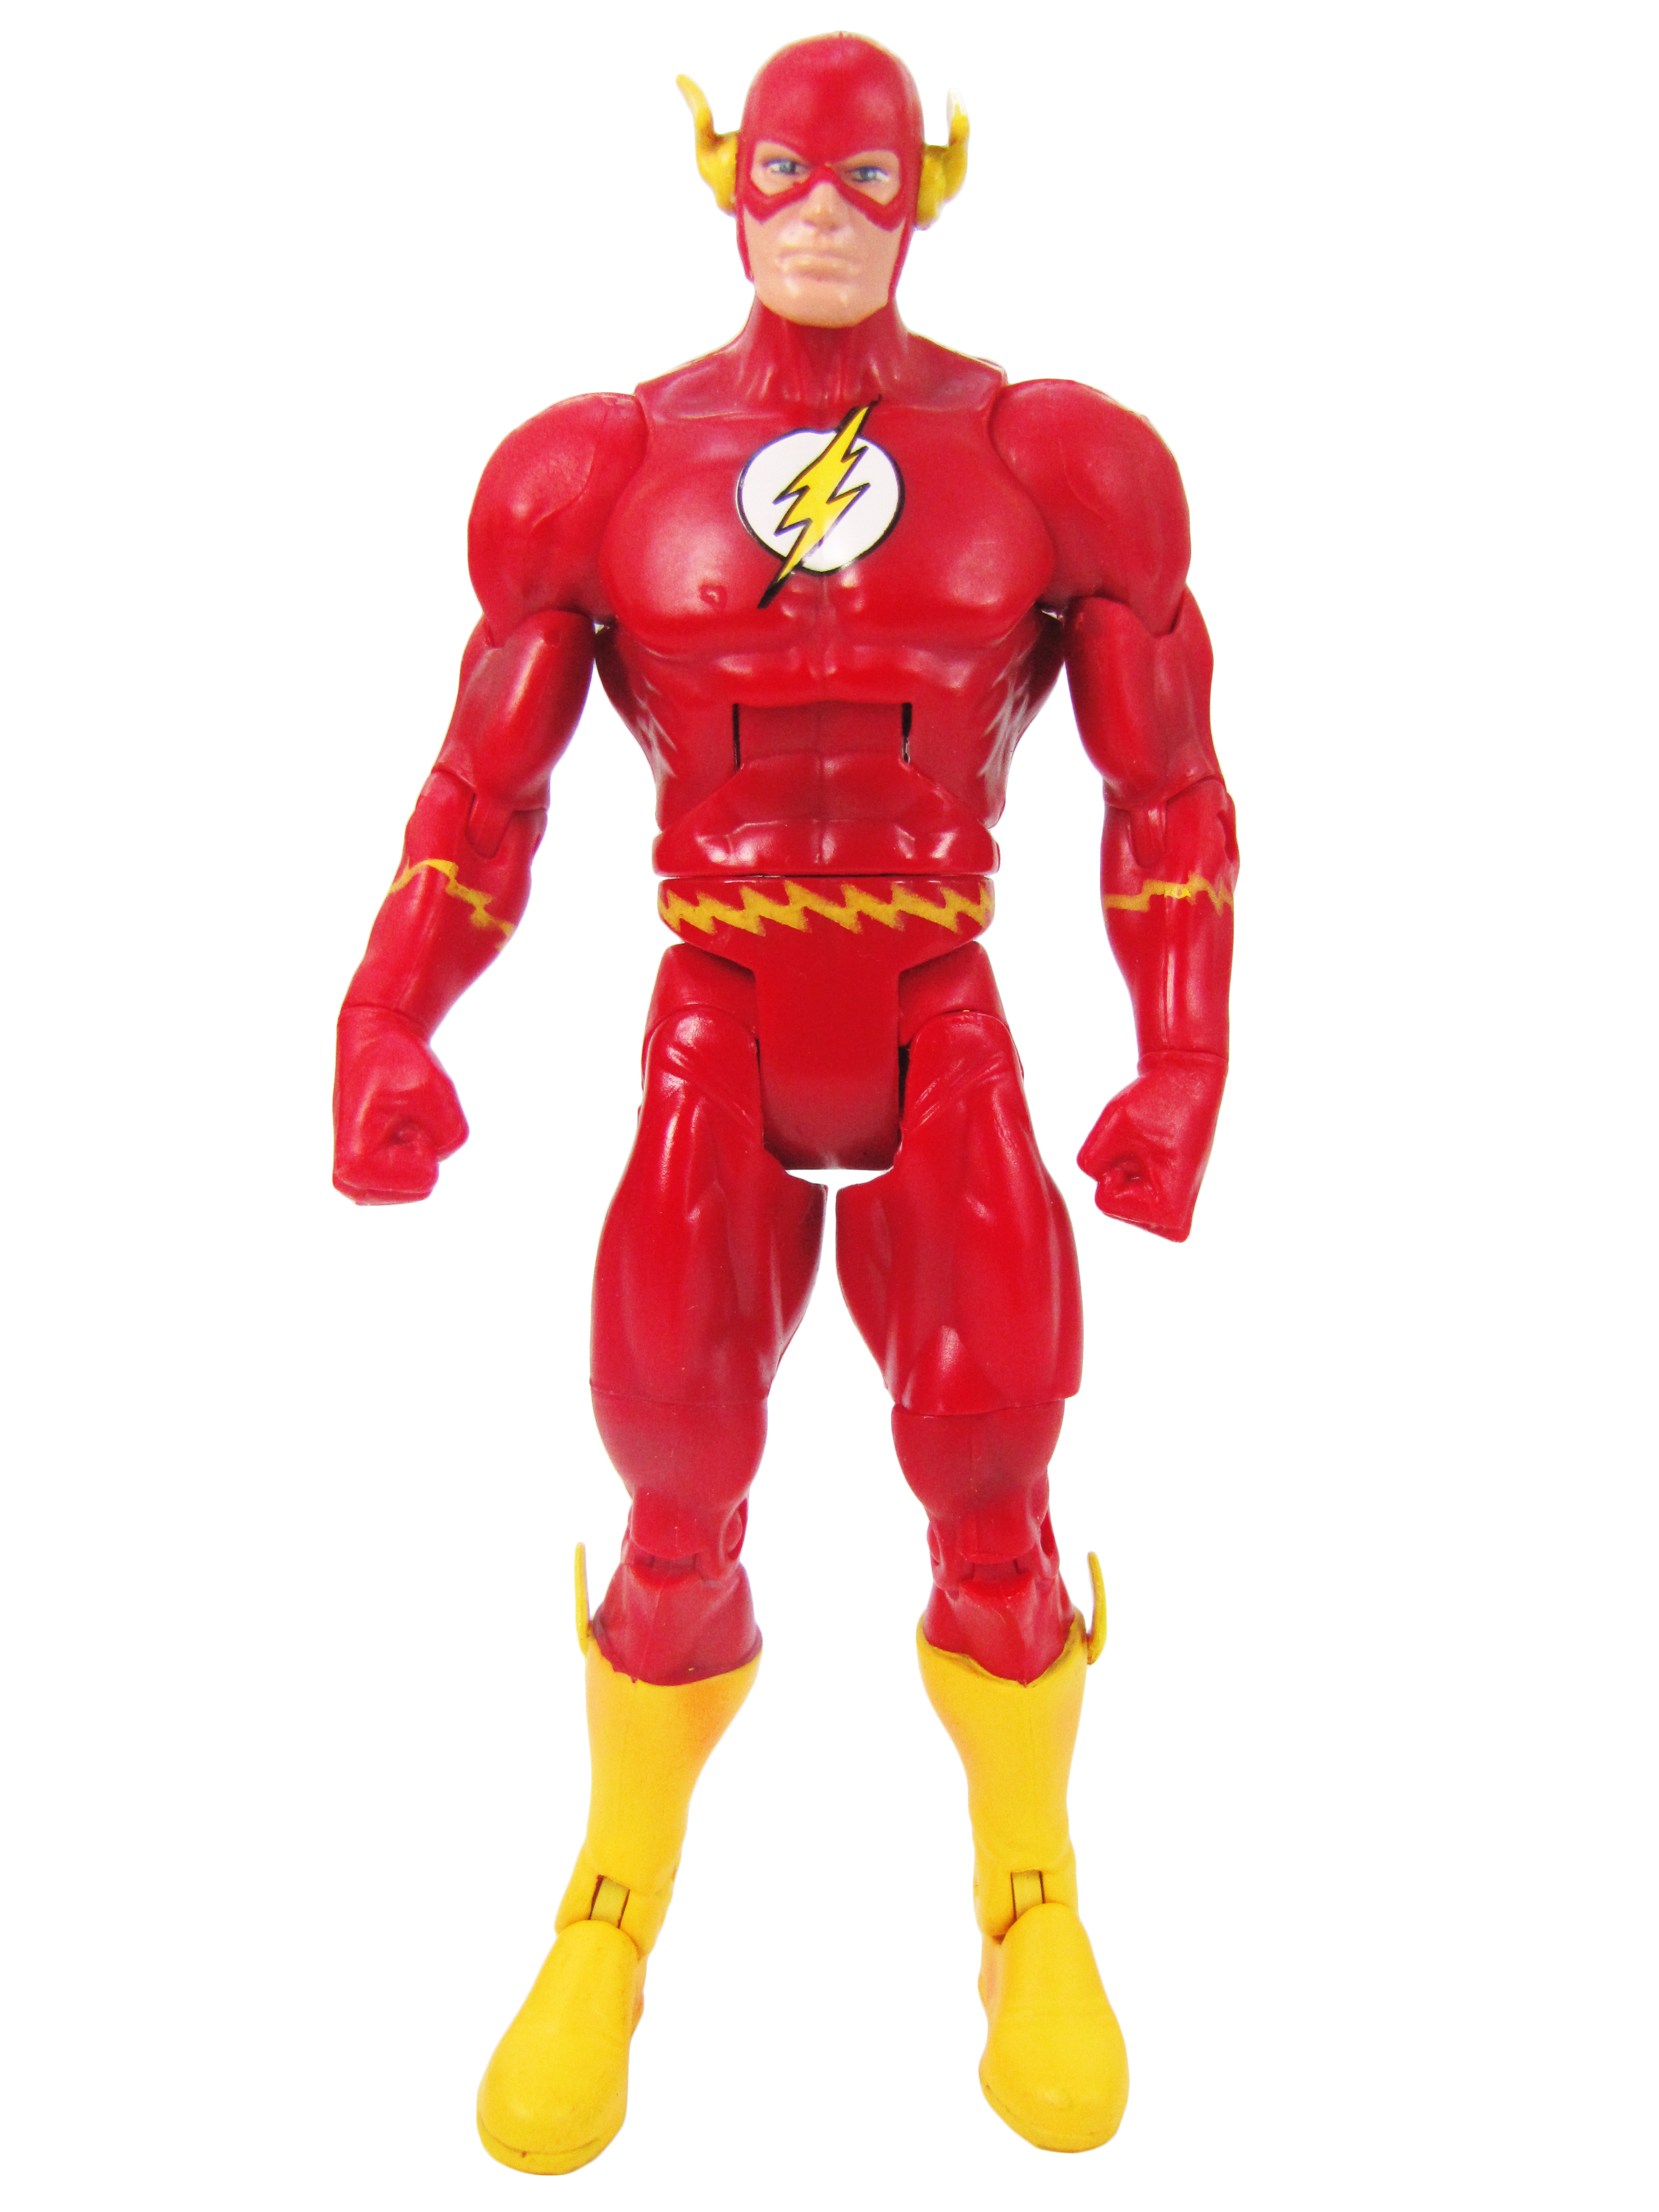 2009 DC Universe Classics THE FLASH BARRY ALLEN Wave 7 ATOM SMASHER Series Compl